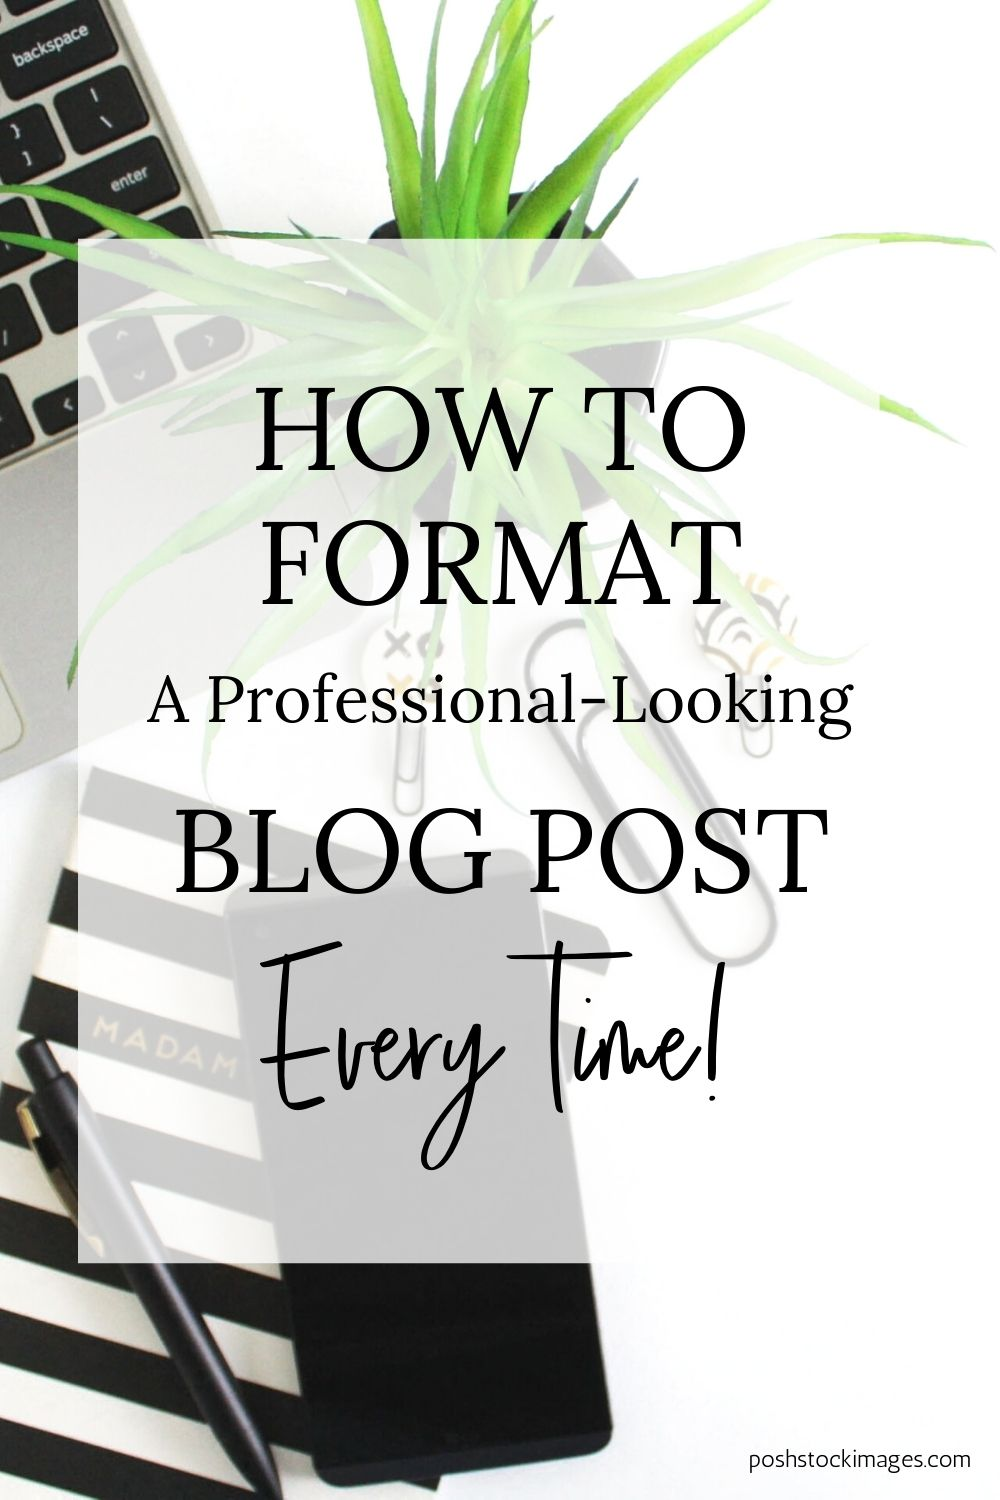 How To Format A Professional-Looking Blog Post Every Time